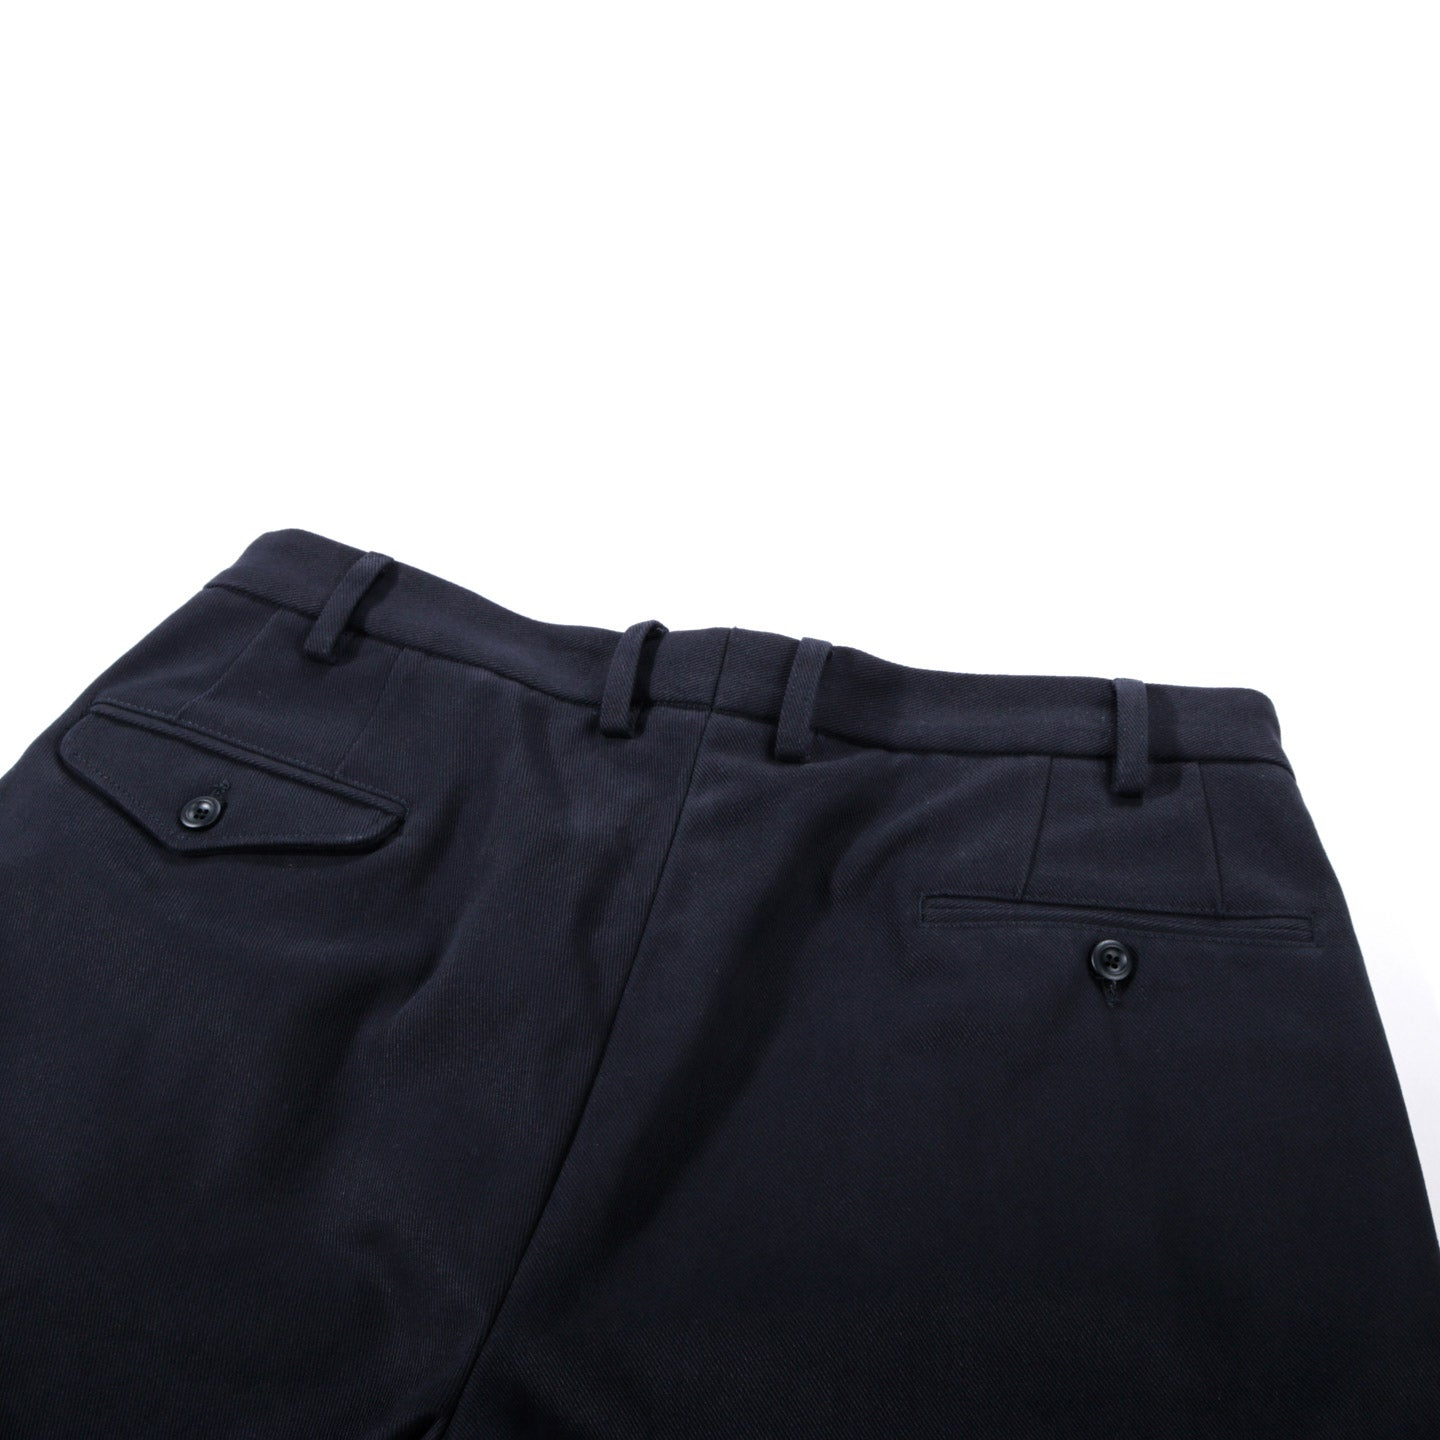 4SDESIGNS TRIPLE PLEAT PANT NAVY HEAVY TWILL